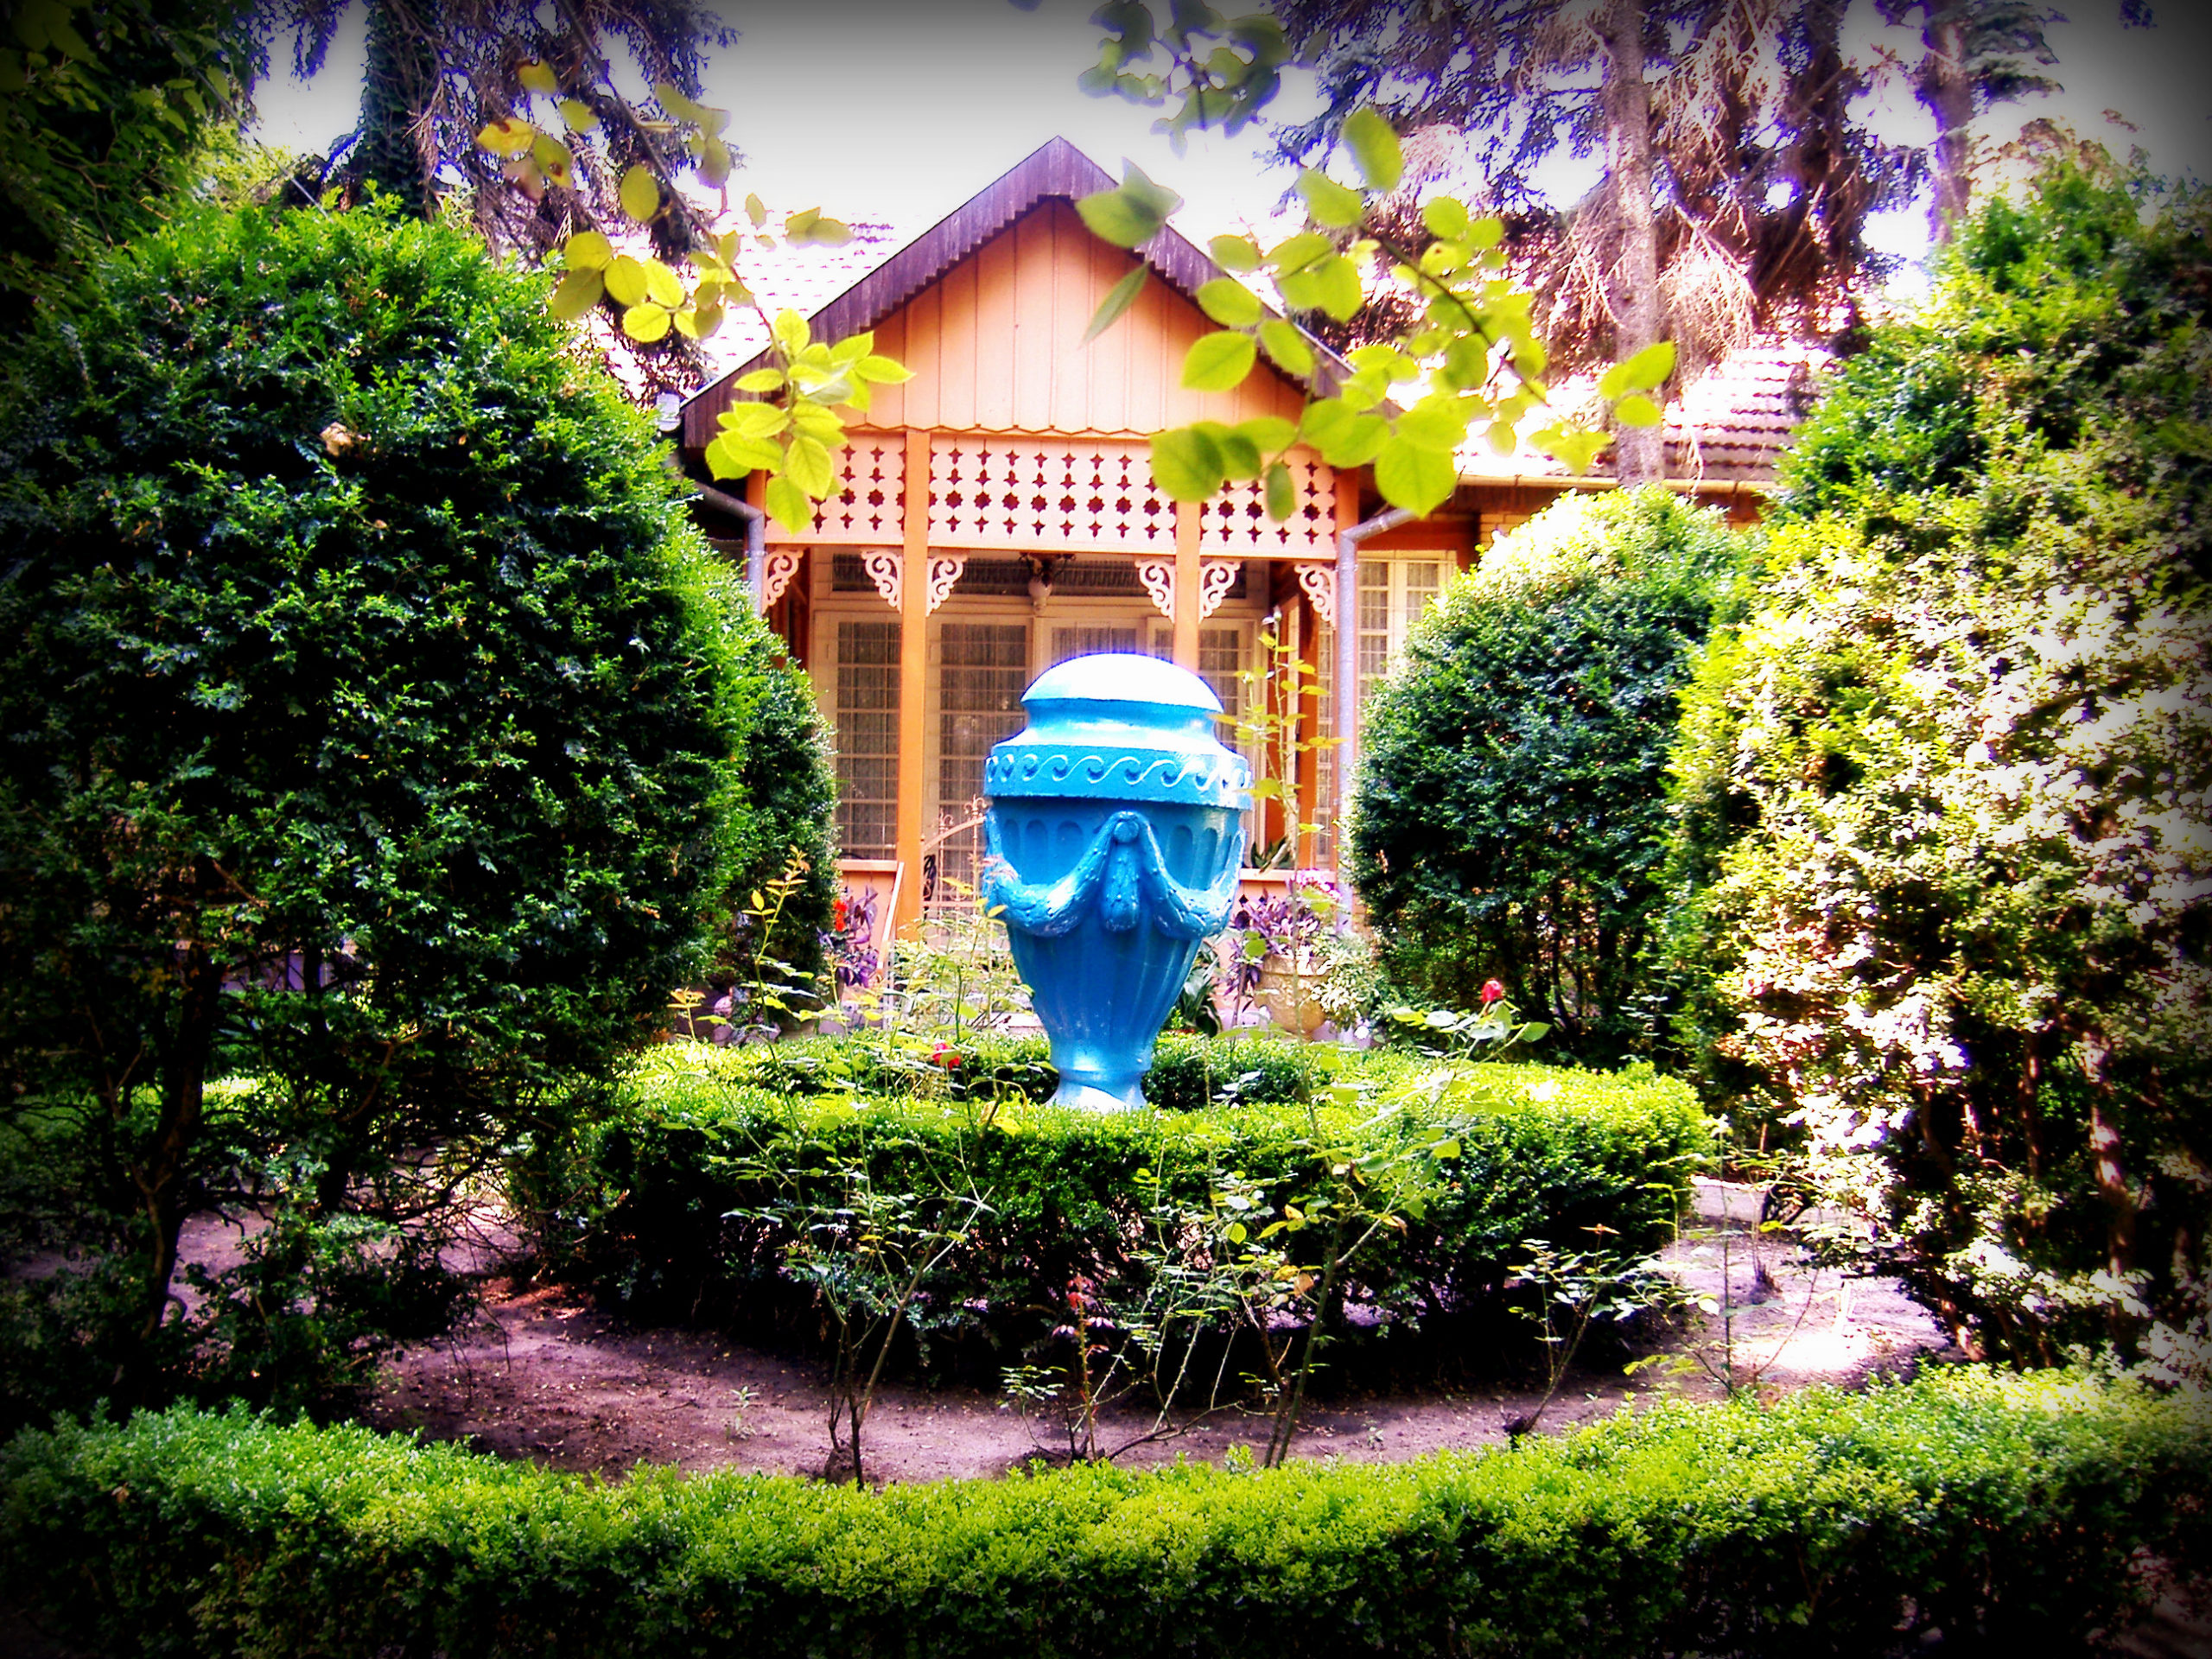 Native house with blue decoration surrounded by green plants